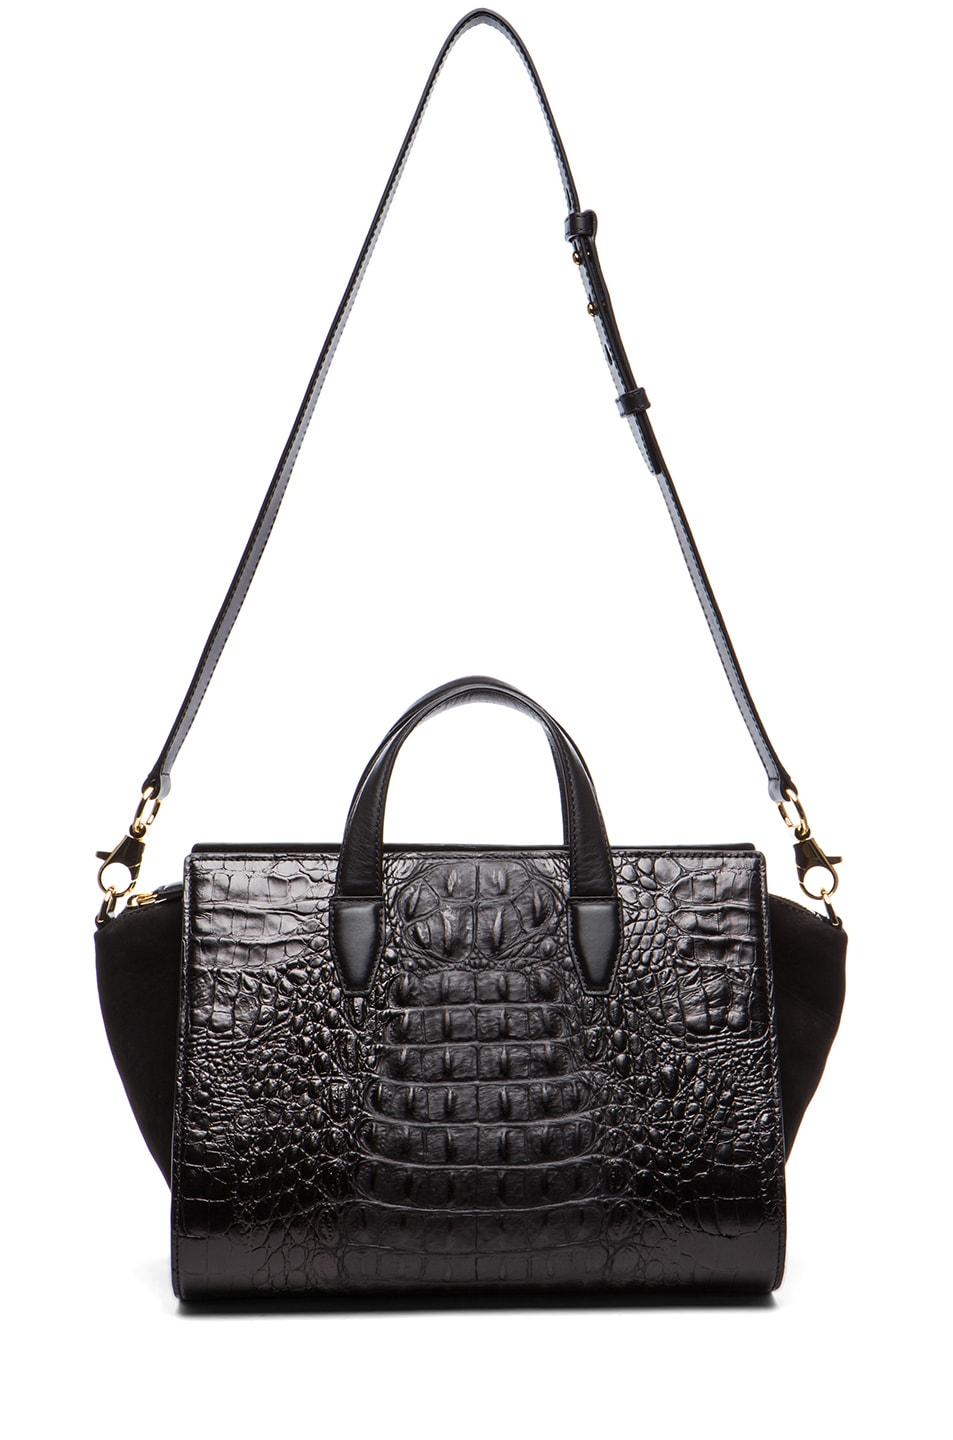 Image 5 of Alexander Wang Pelican Satchel with Yellow Gold in Black